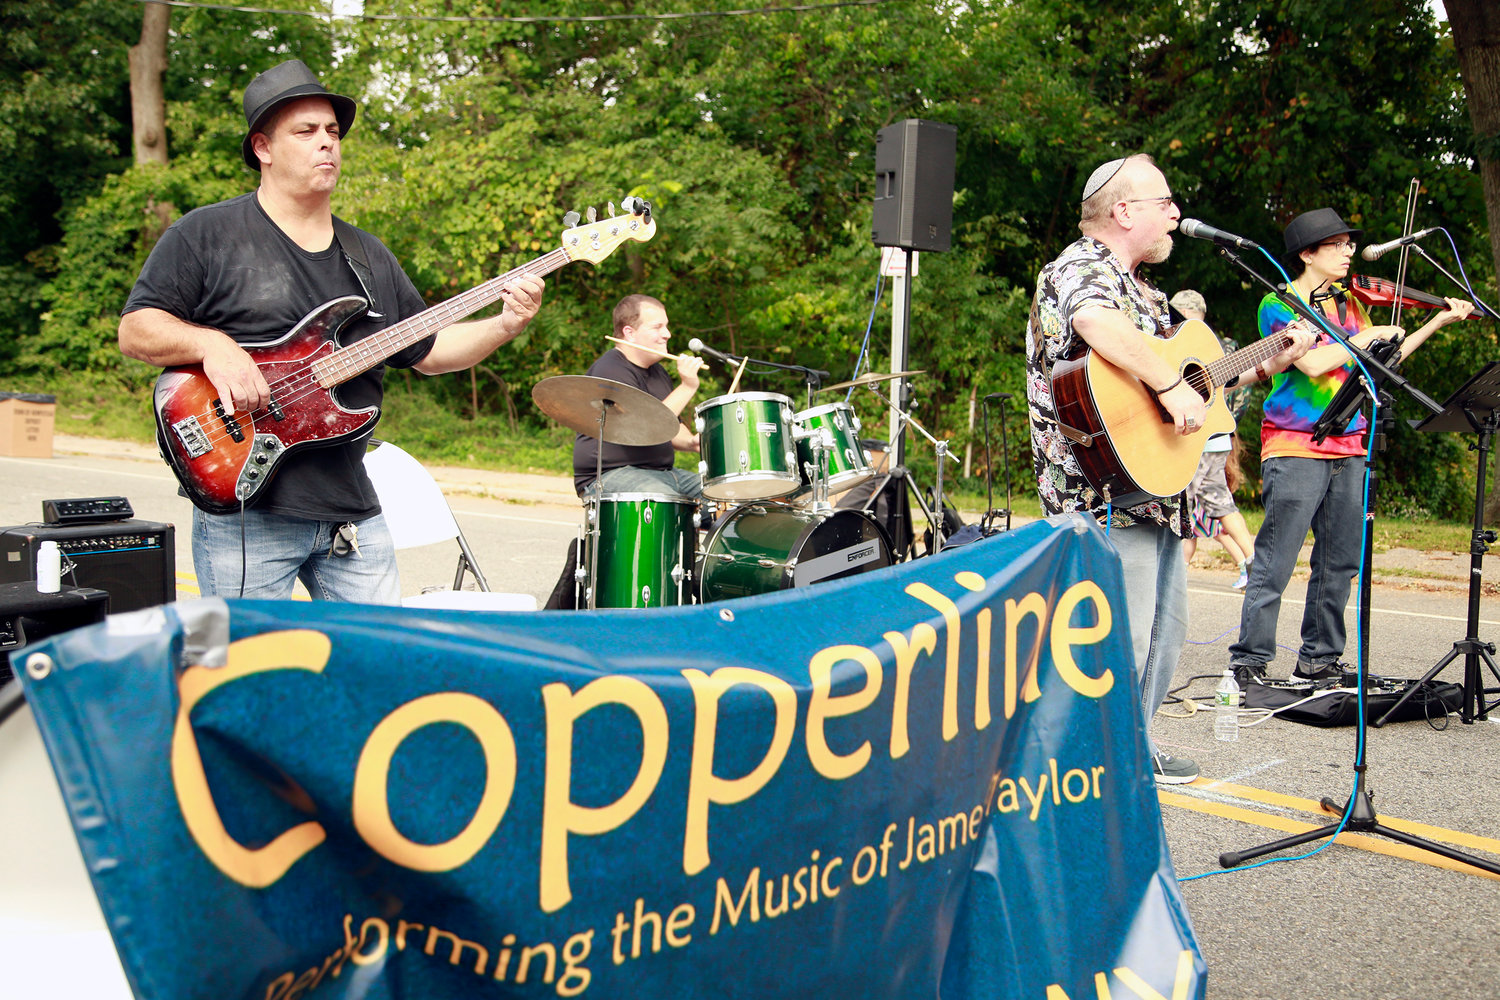 The band, Copperline covered music legend James Taylor's hit songs